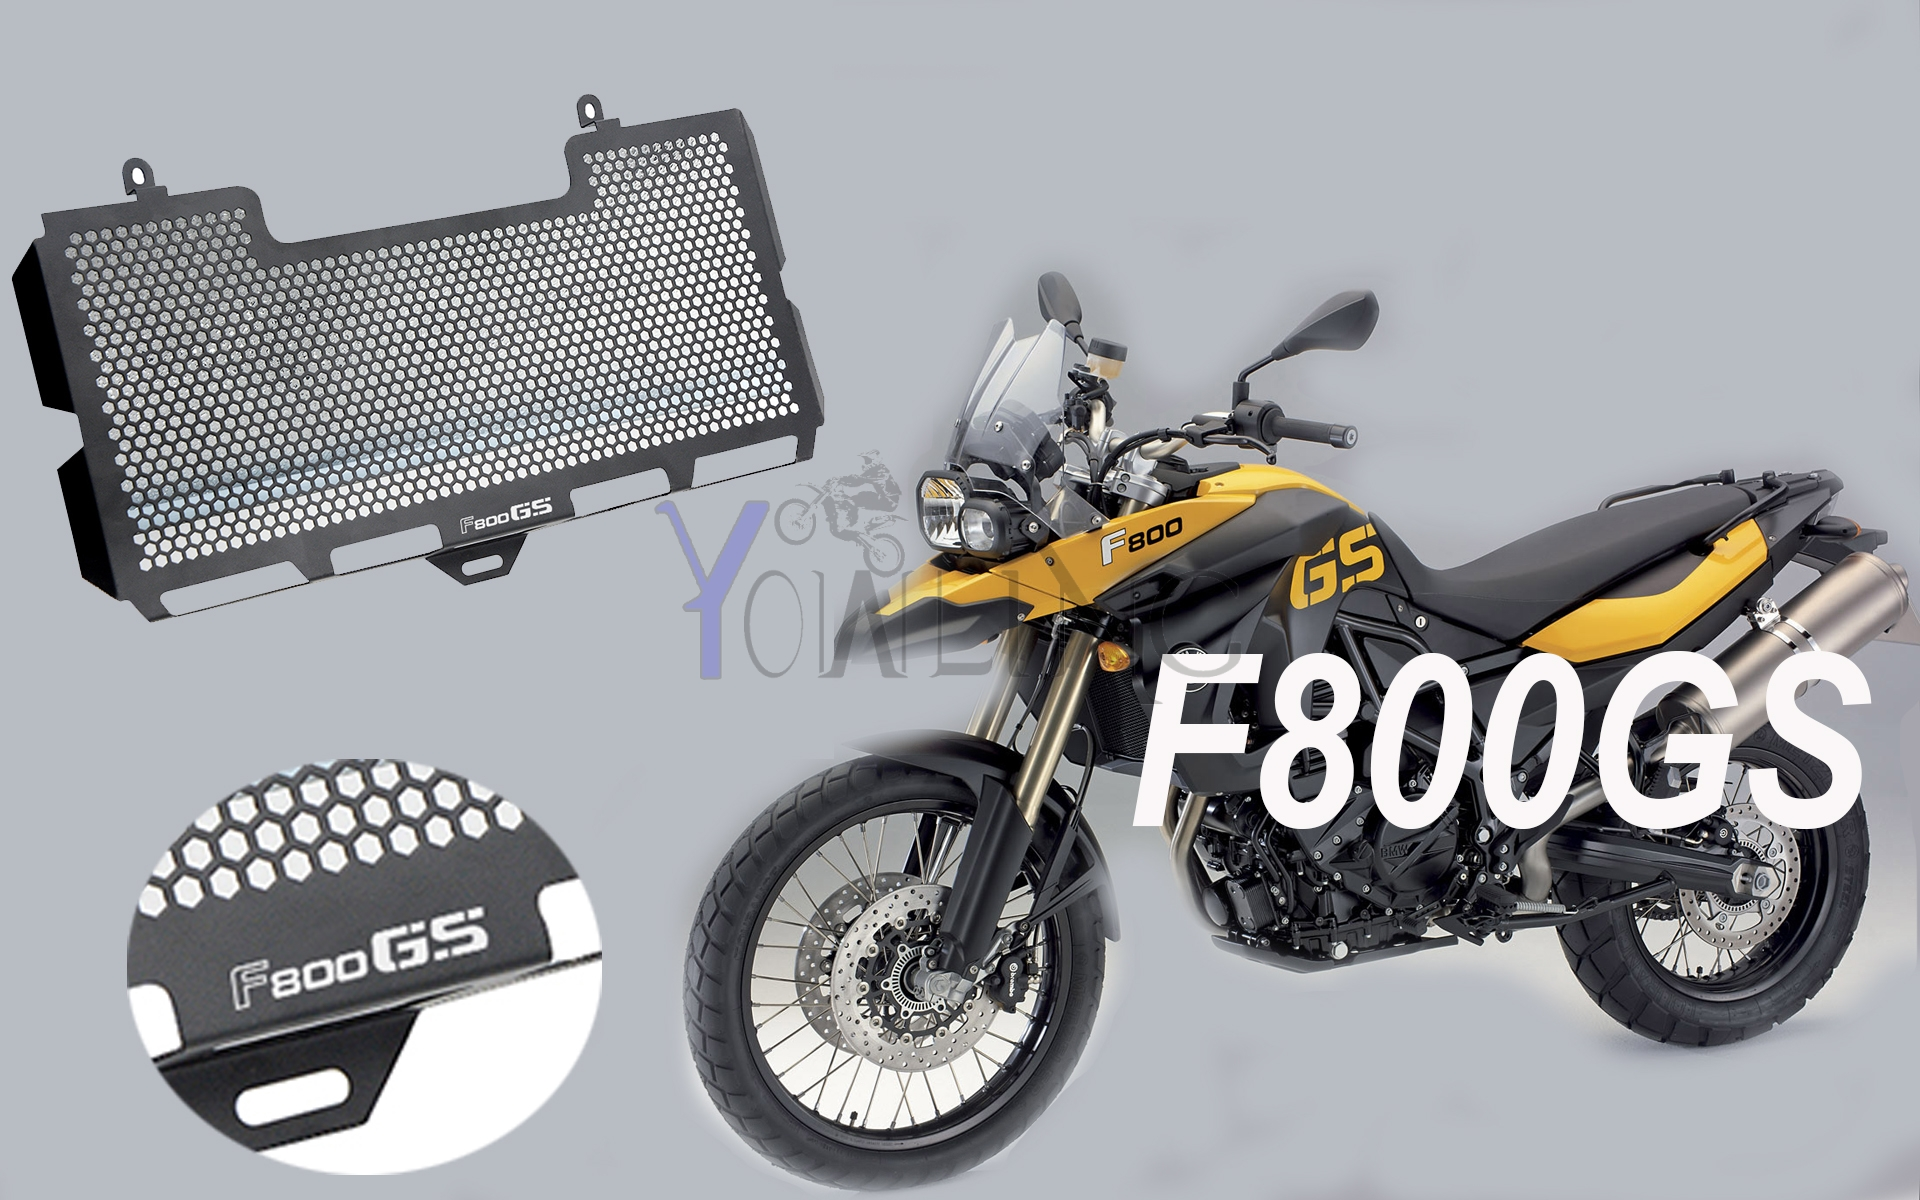 For BMW F800GS Motorcycle Radiator Grille Guard Cover Accessories protective F 800 GS 800GS (08-15) motorcycle radiator grill grille guard screen cover protector tank water black for bmw f800r 2009 2010 2011 2012 2013 2014